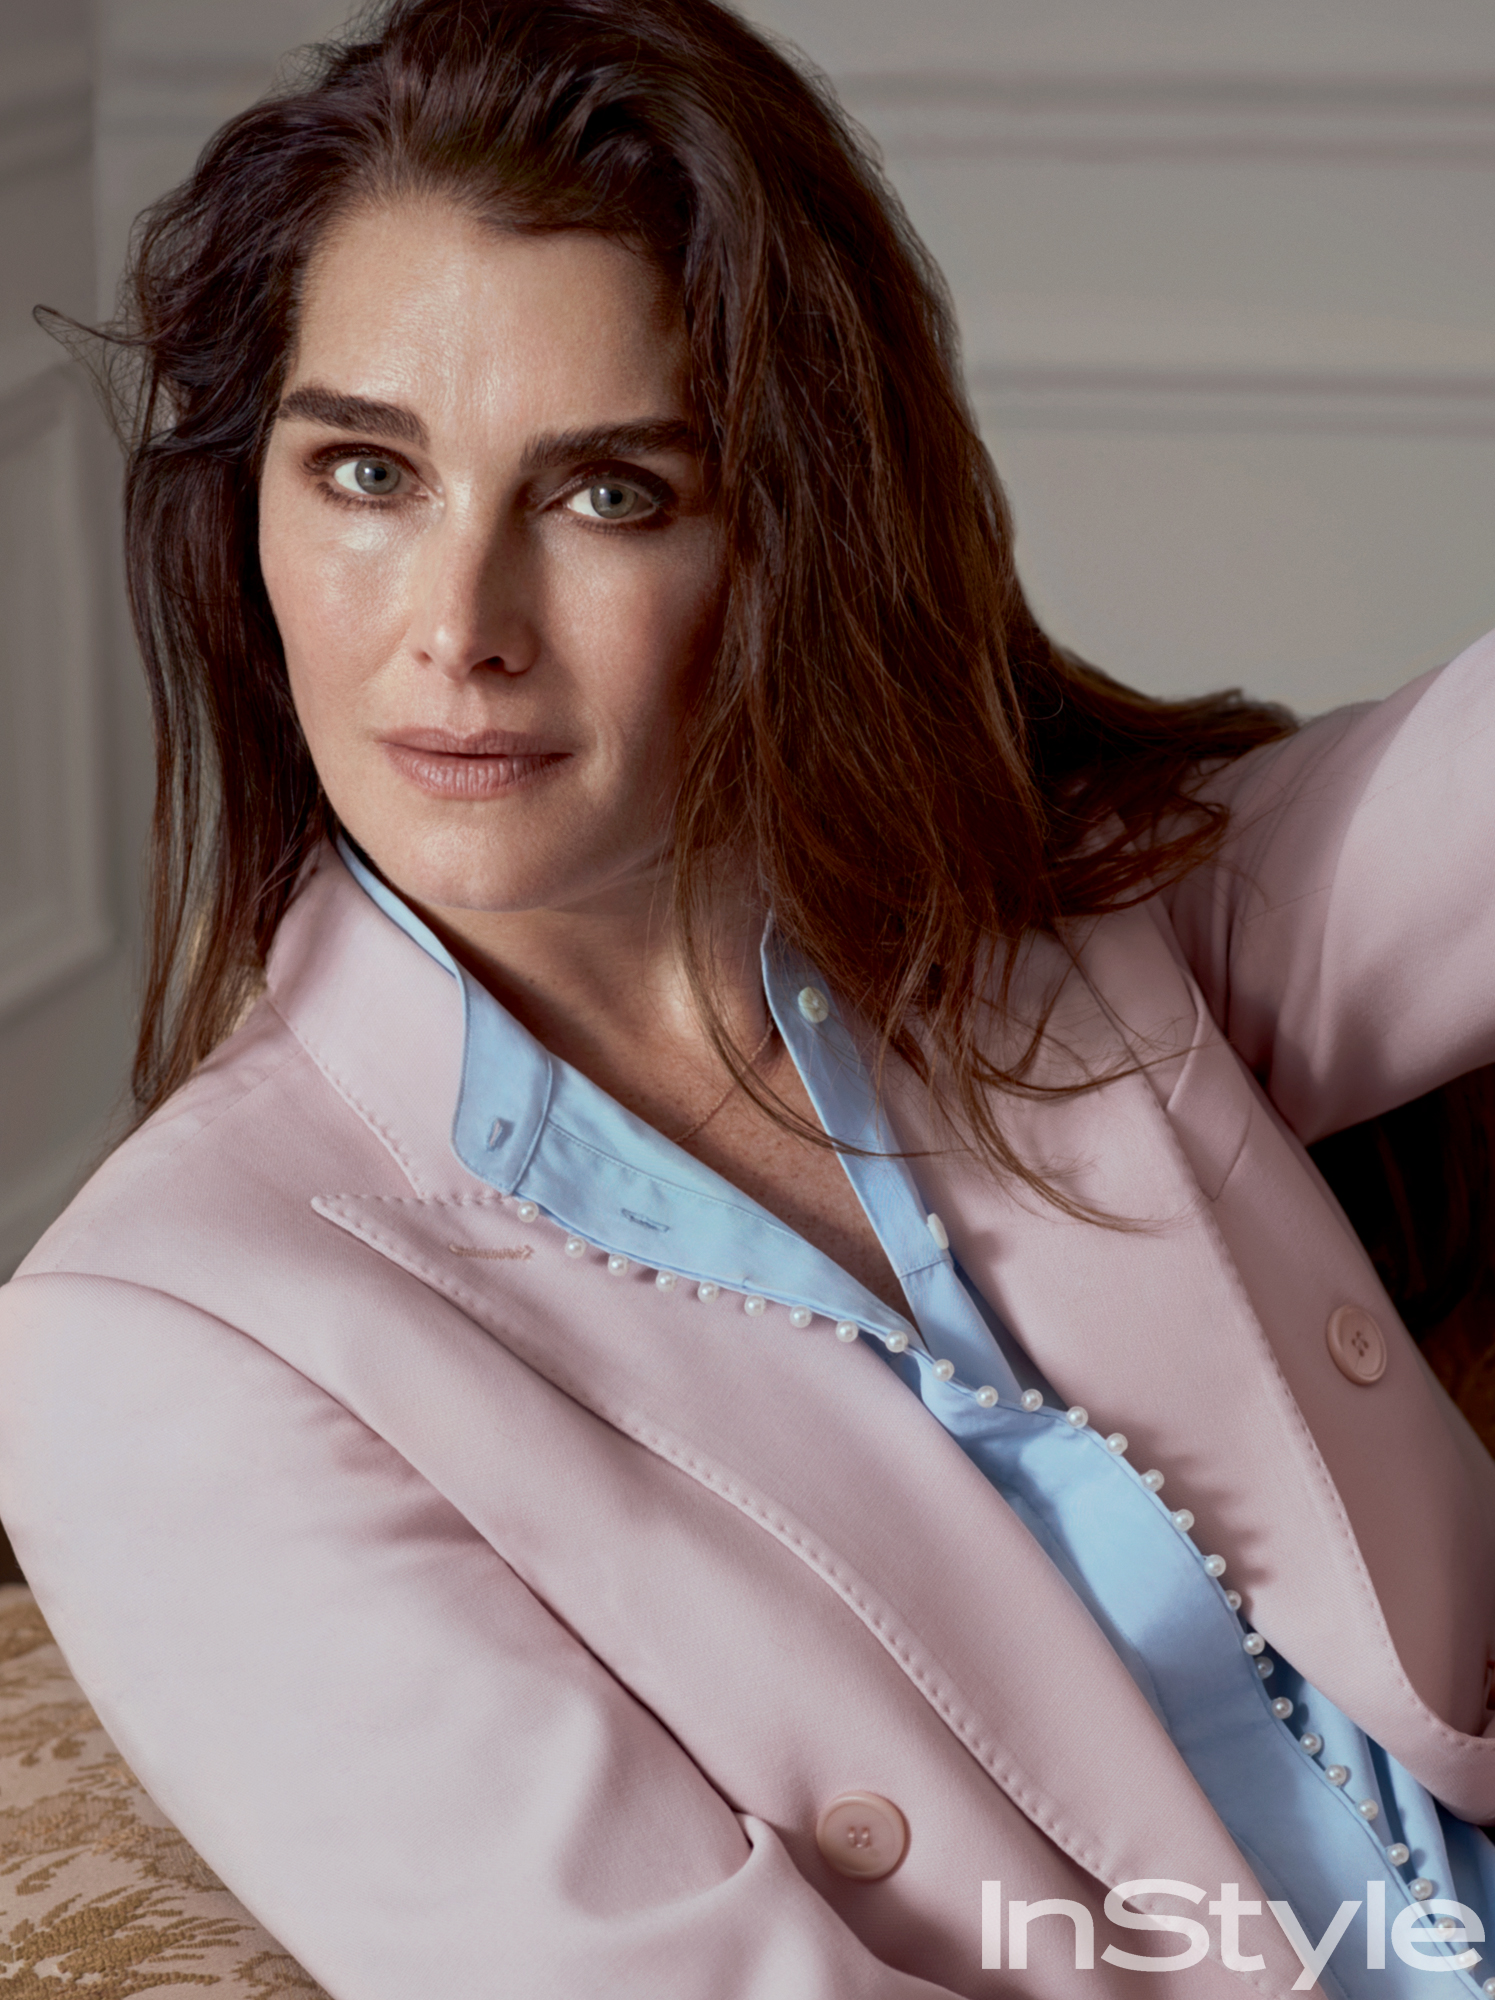 Brooke Shields on the Eyebrows That Made Her Famous